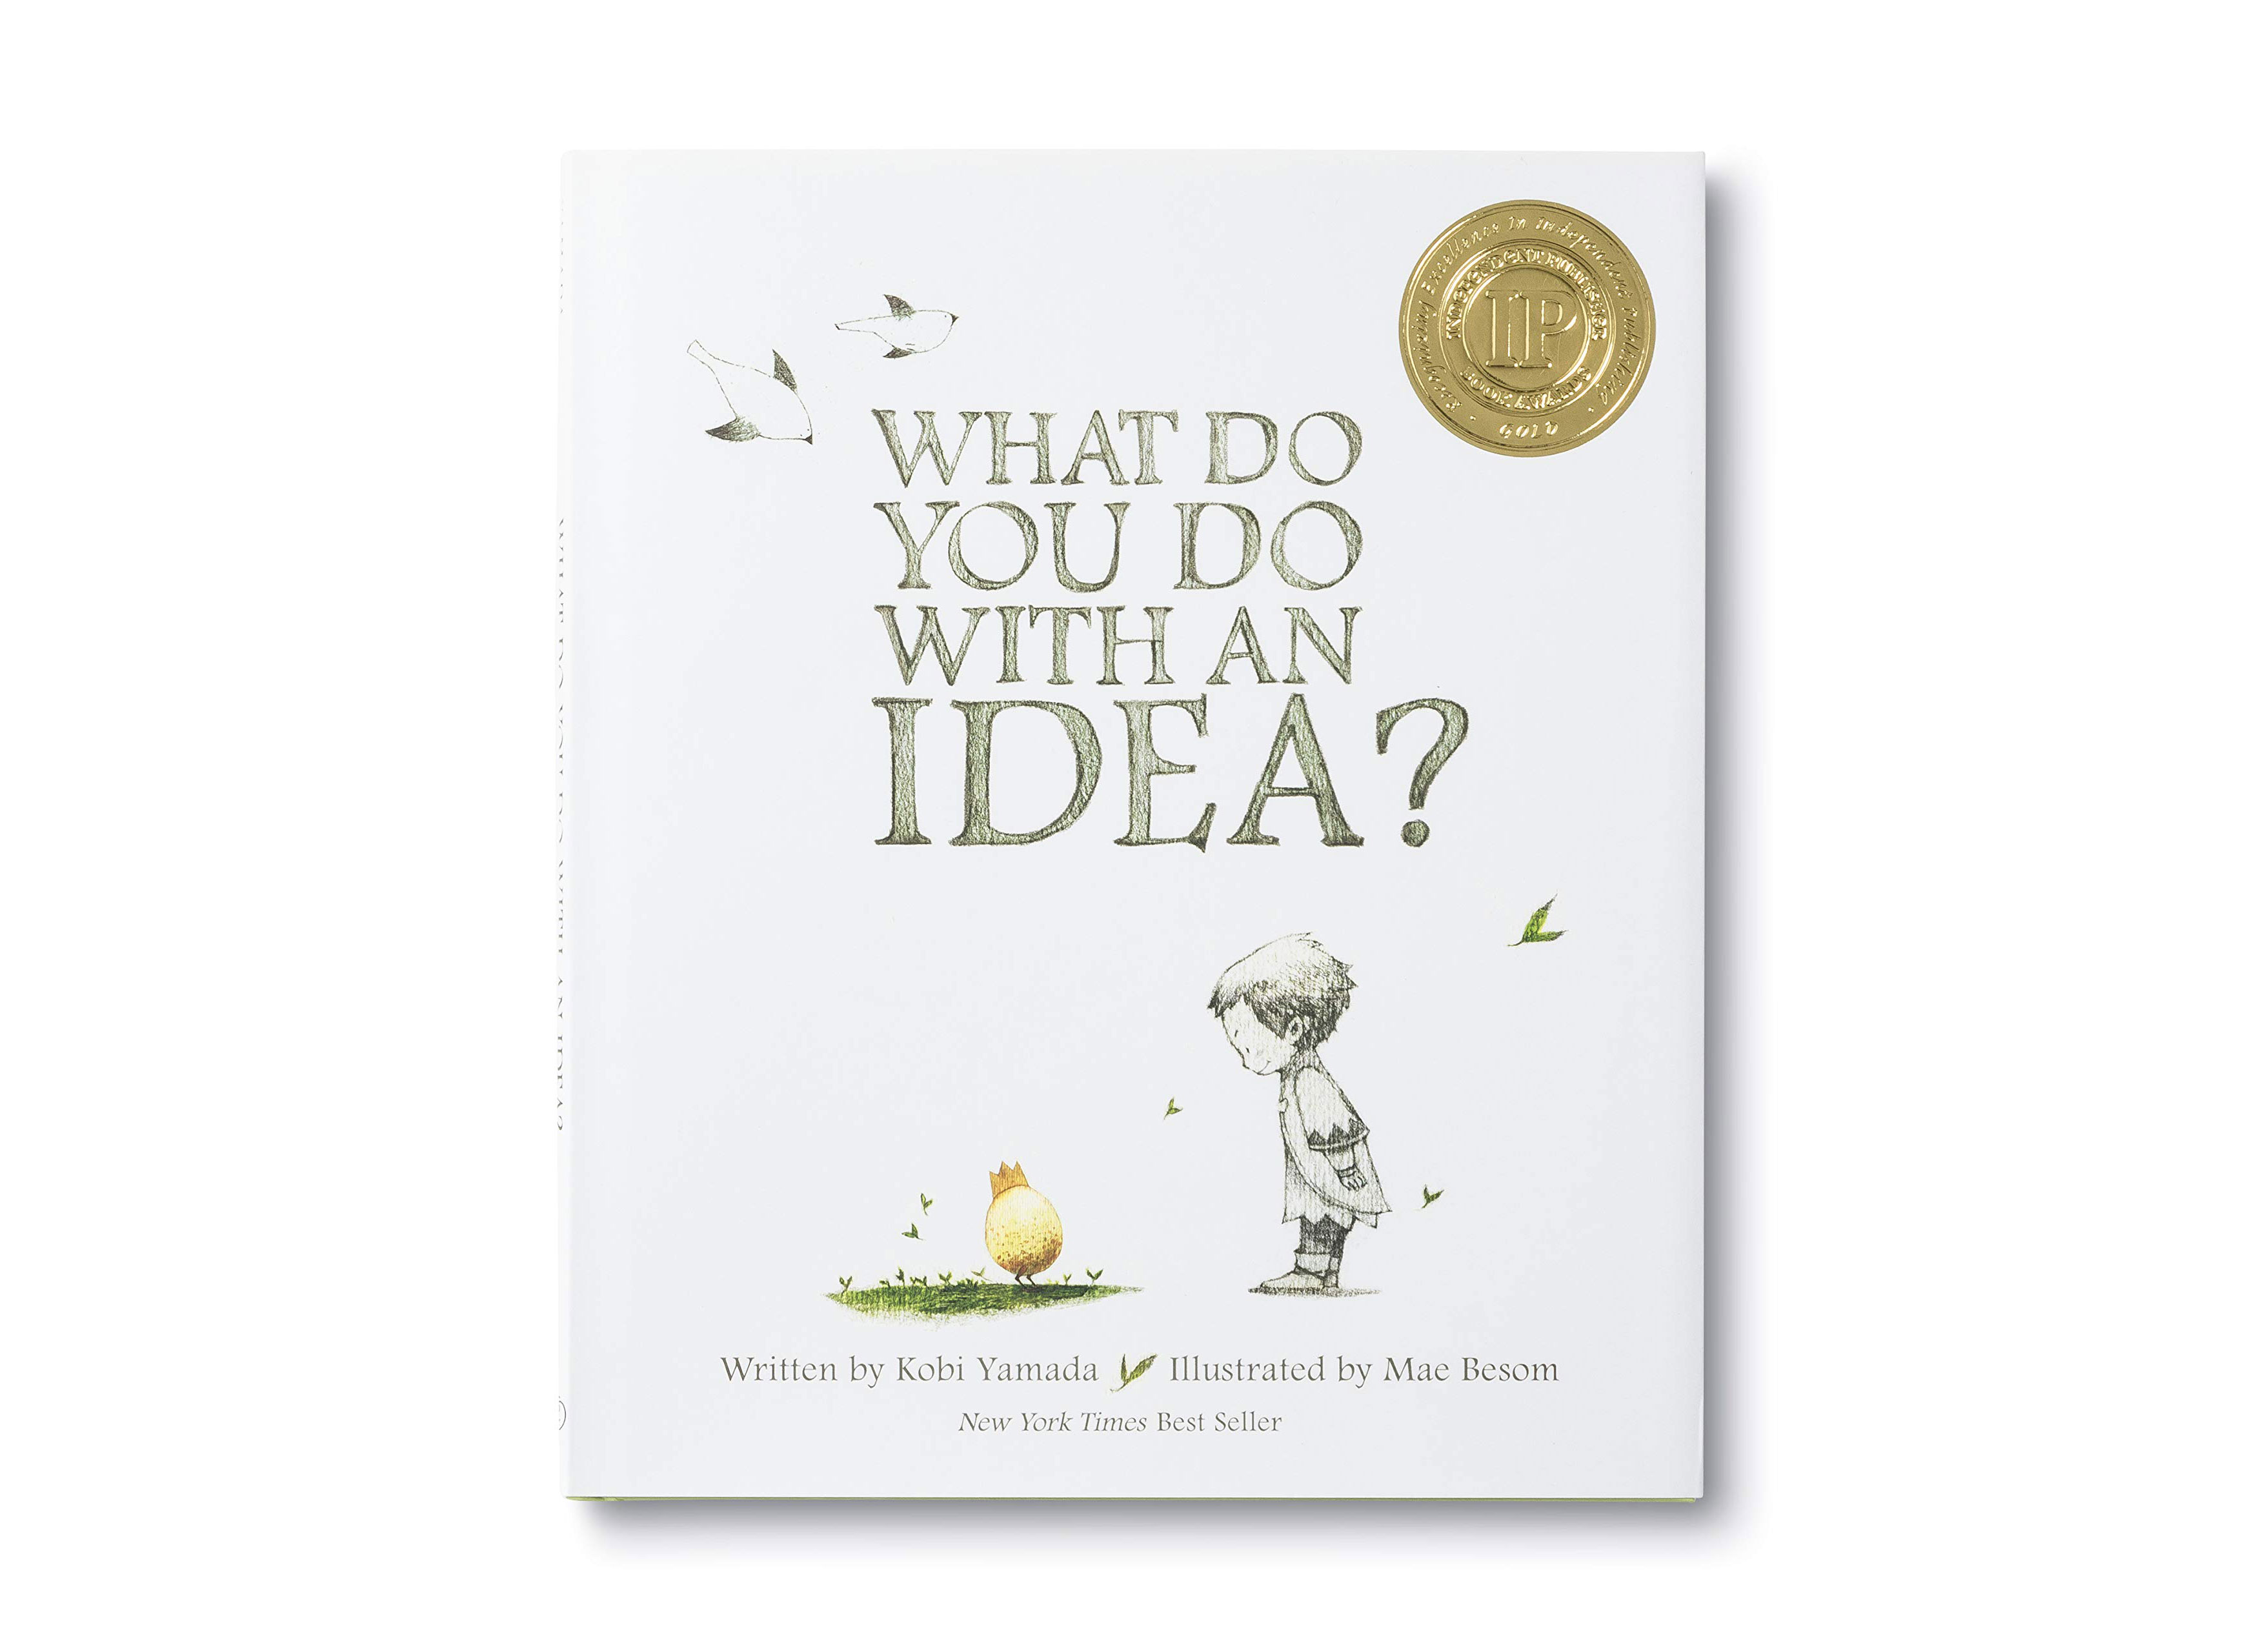 What Do You Do With an Idea? hardcover book